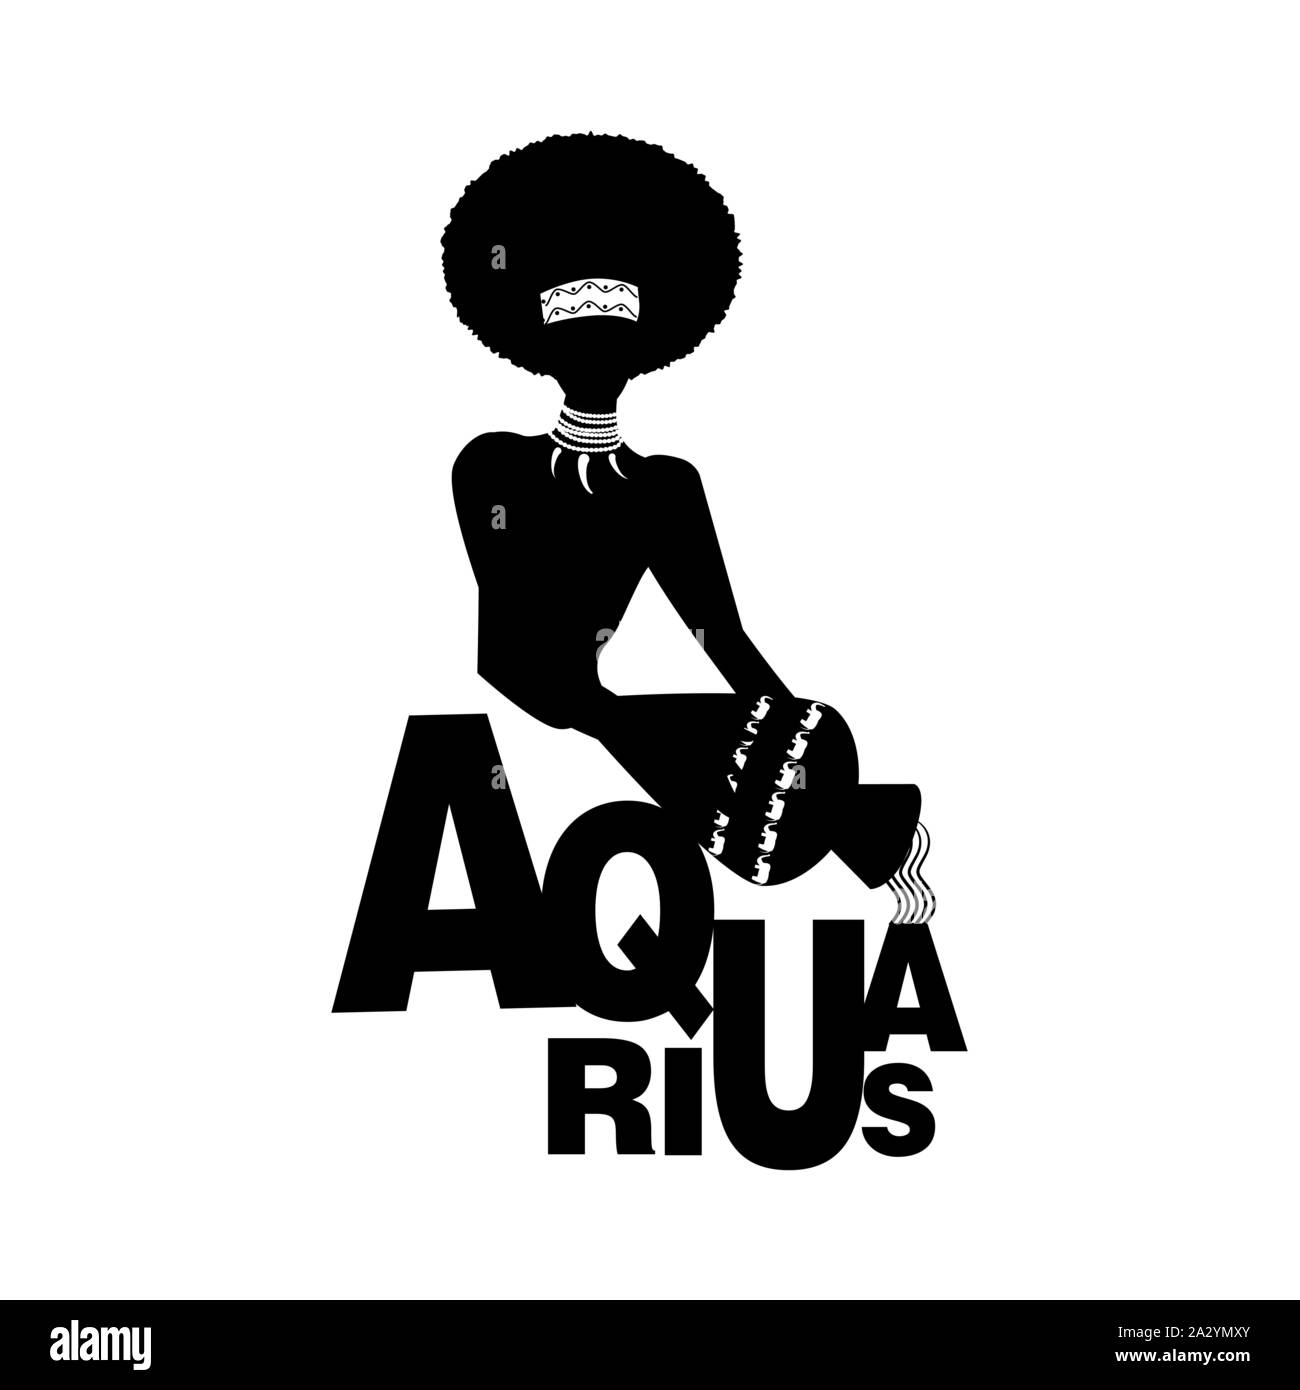 Aquarius The Water Carrier High Resolution Stock Photography And Images Alamy